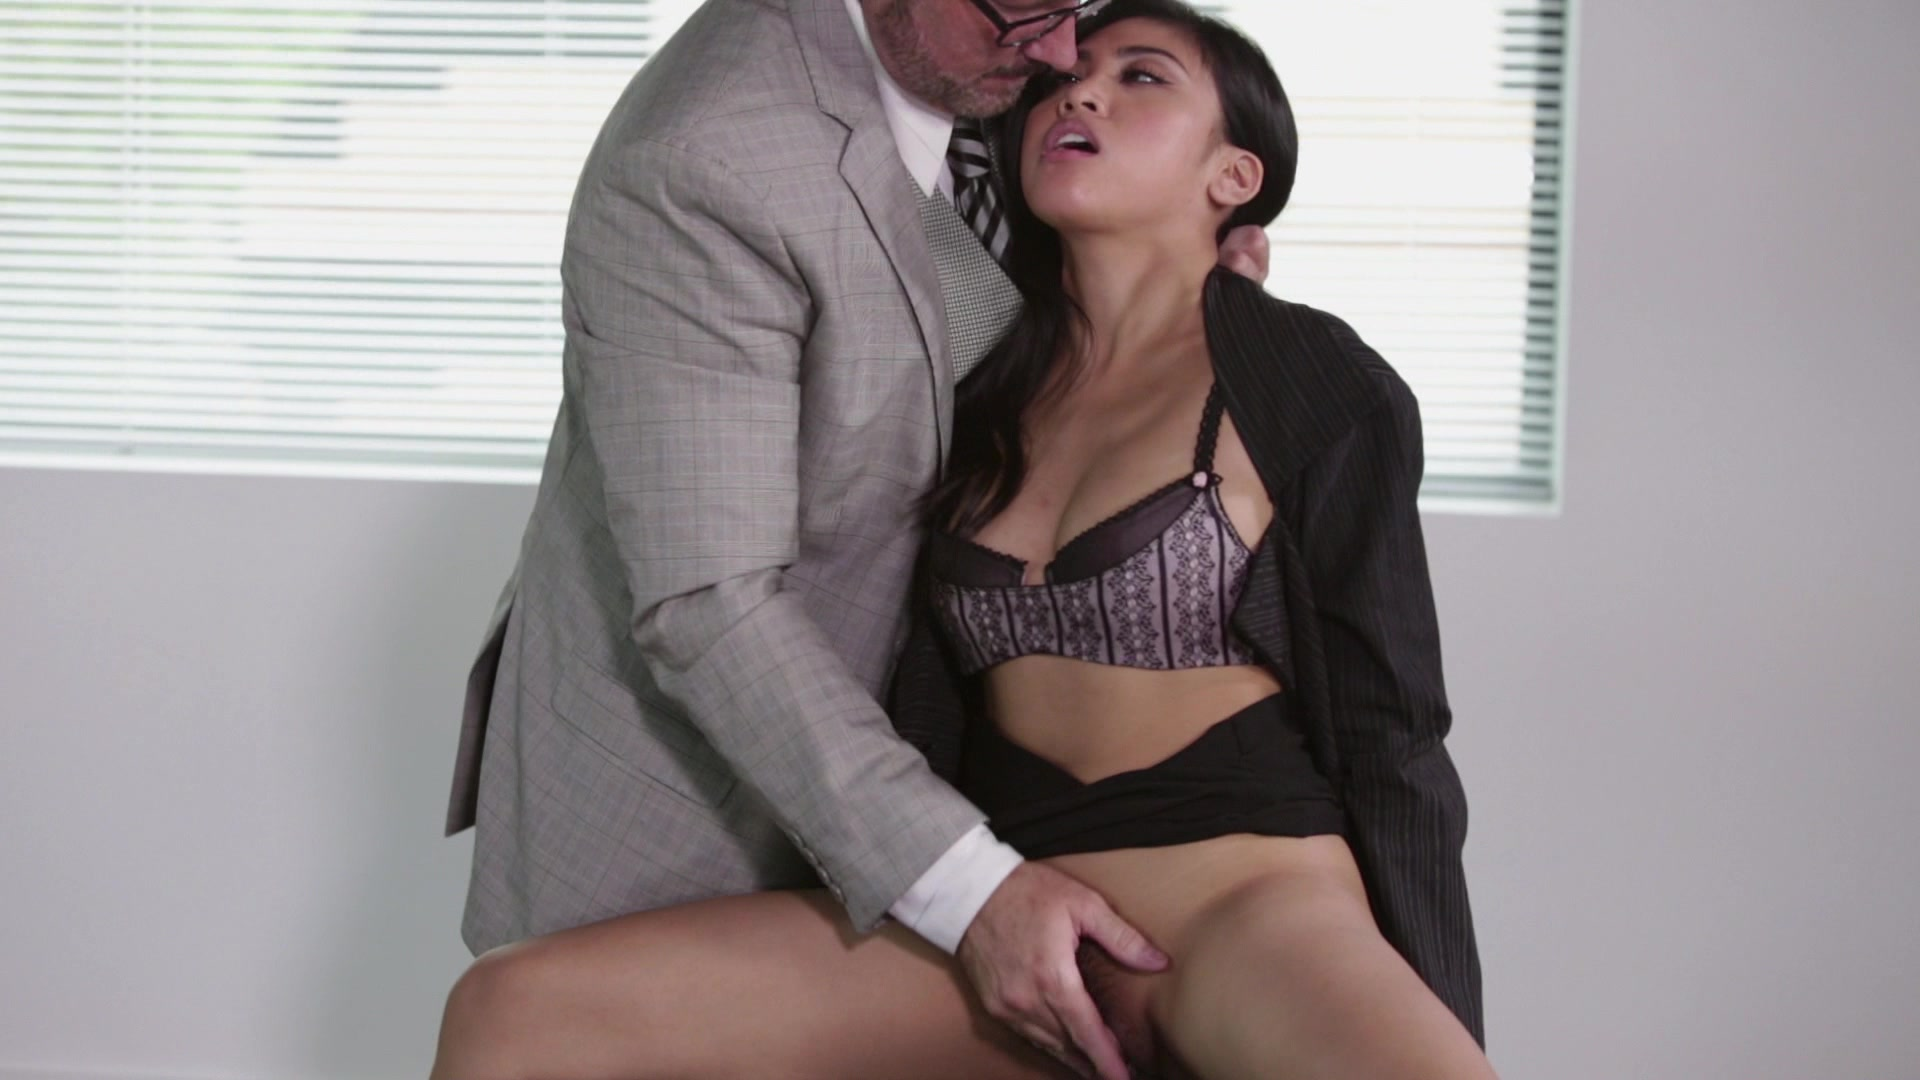 Scene with Ember Snow - image 12 out of 20